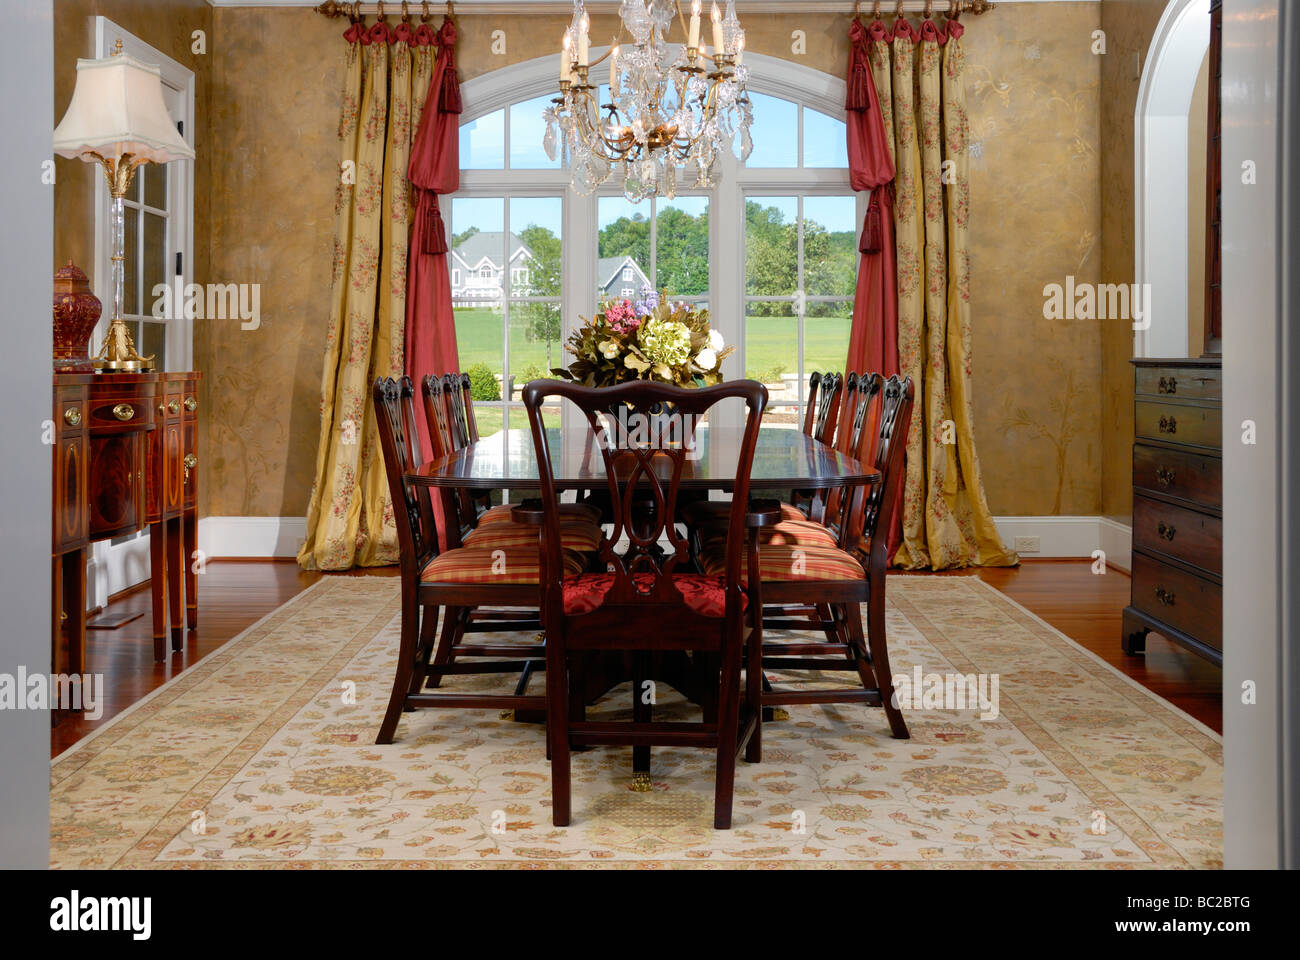 Residential dining room interior - Stock Image